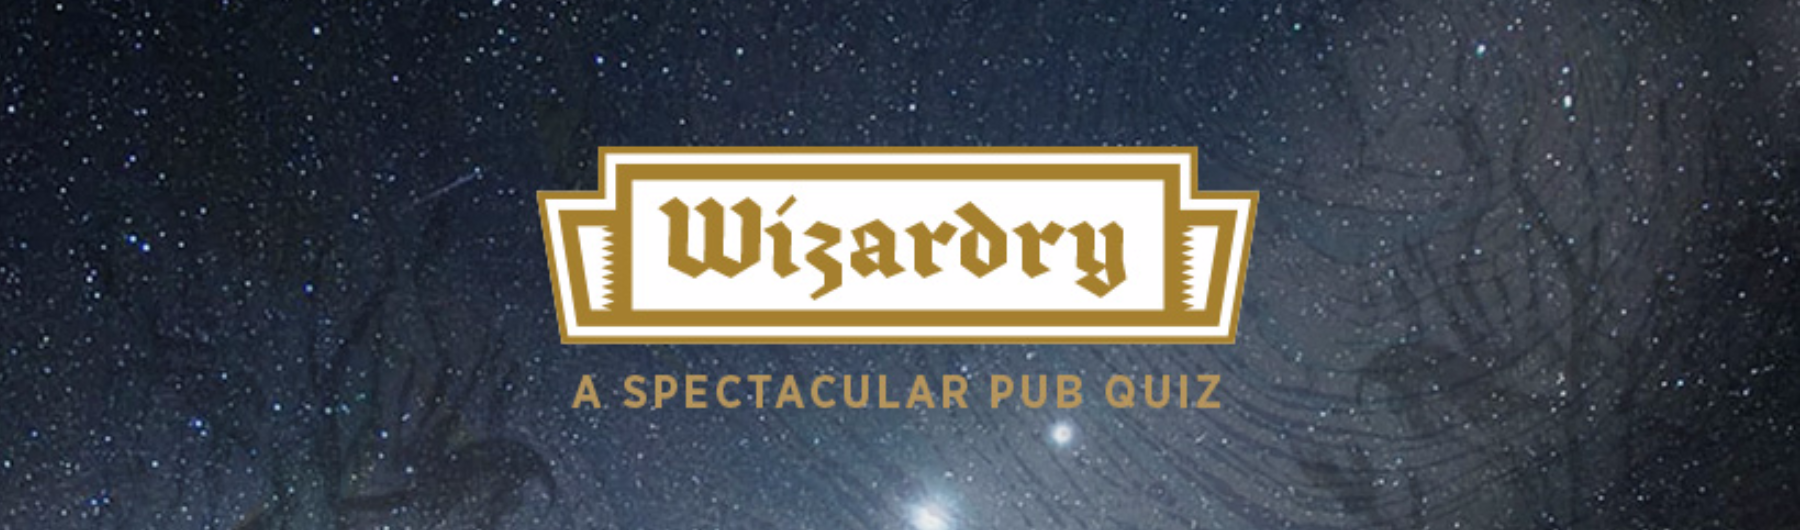 Postponed - Wizardry Quiz - for the Loyal (Norwich) *FESTIVE EDITION*